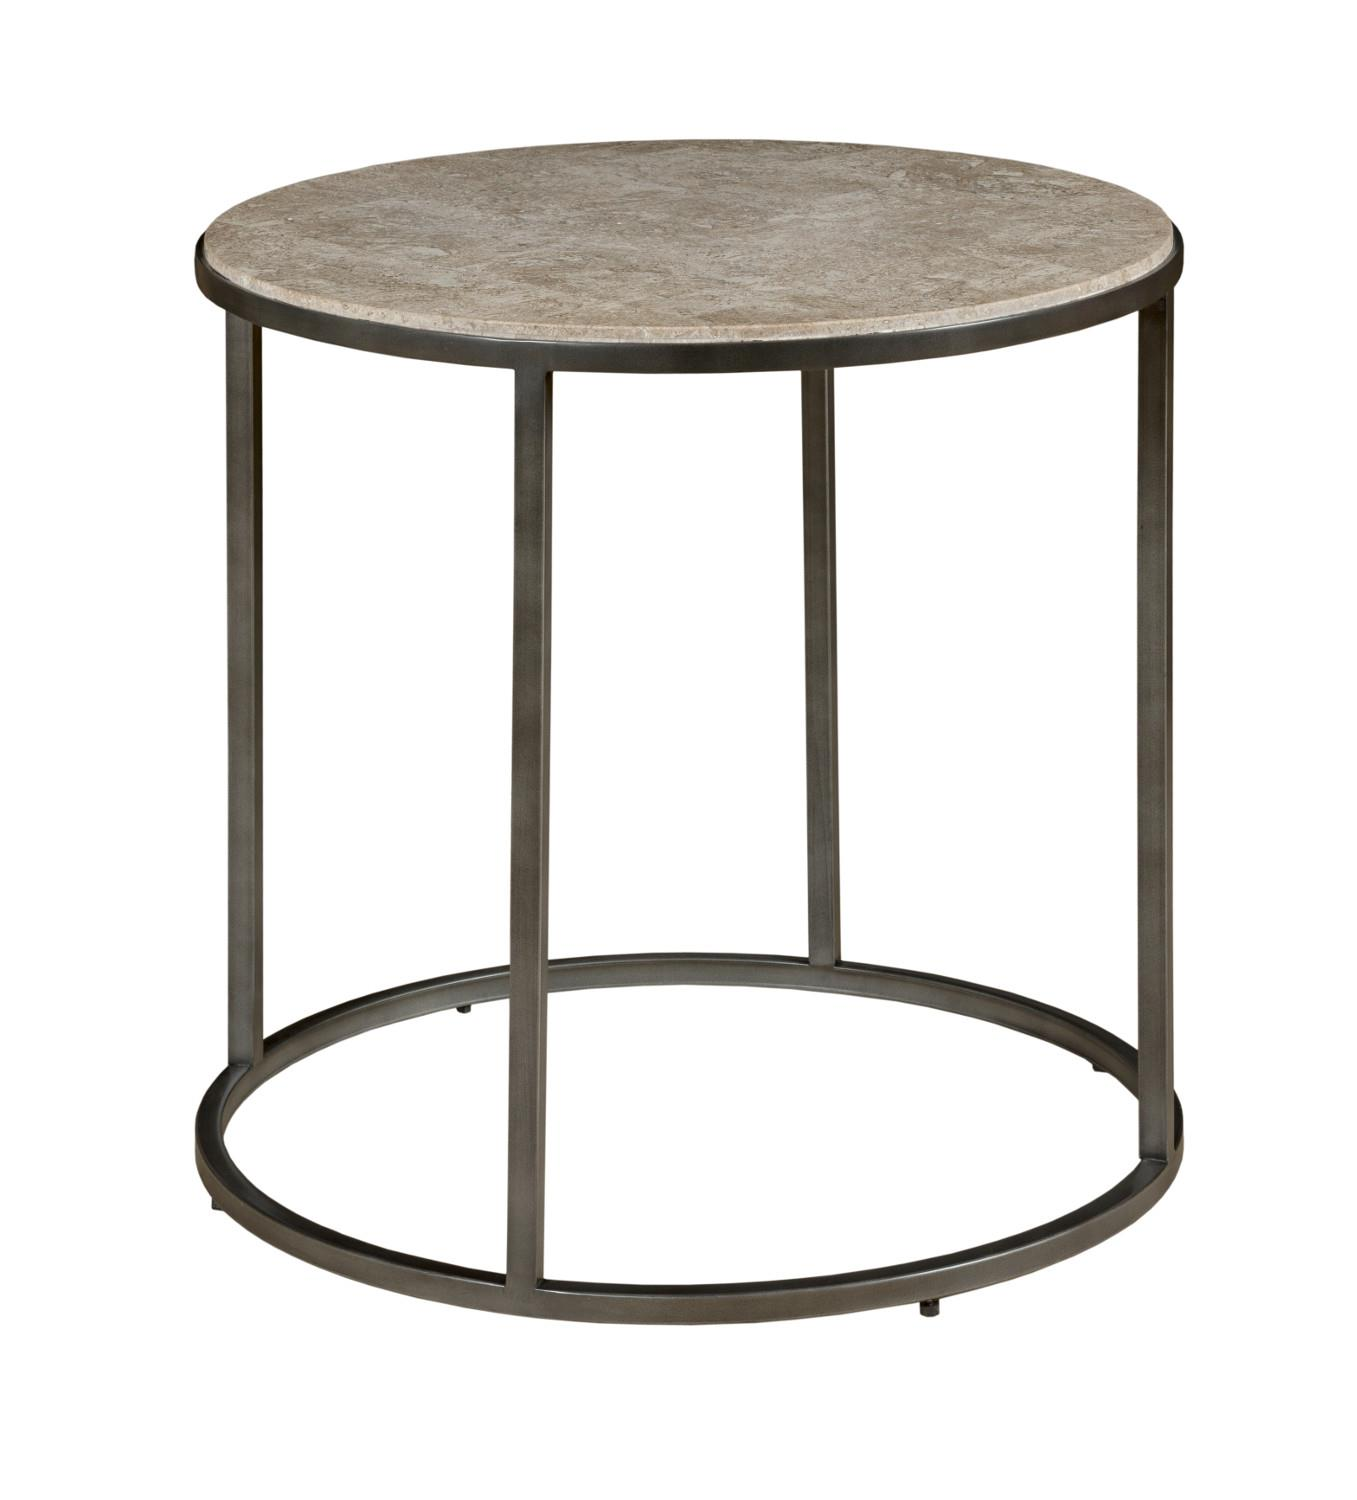 Loretto Loretto Round End Table by Hammary at Morris Home